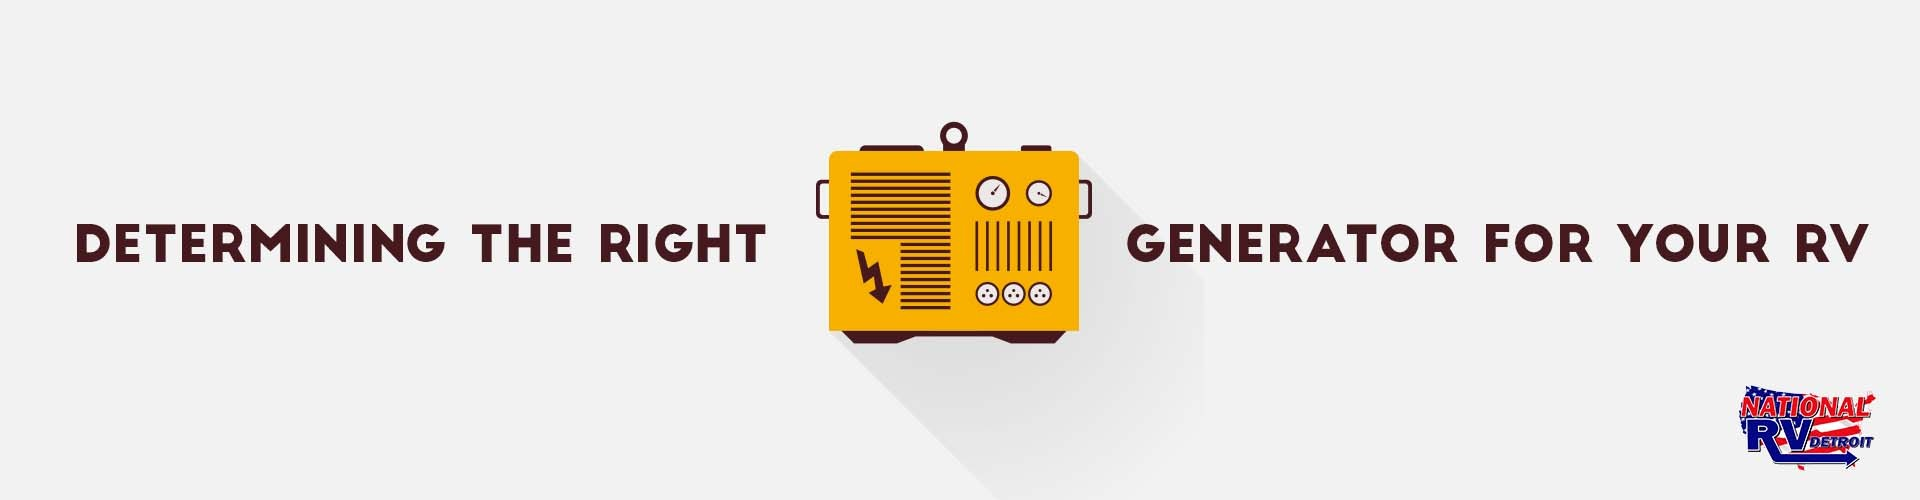 determining the right generator for your rv